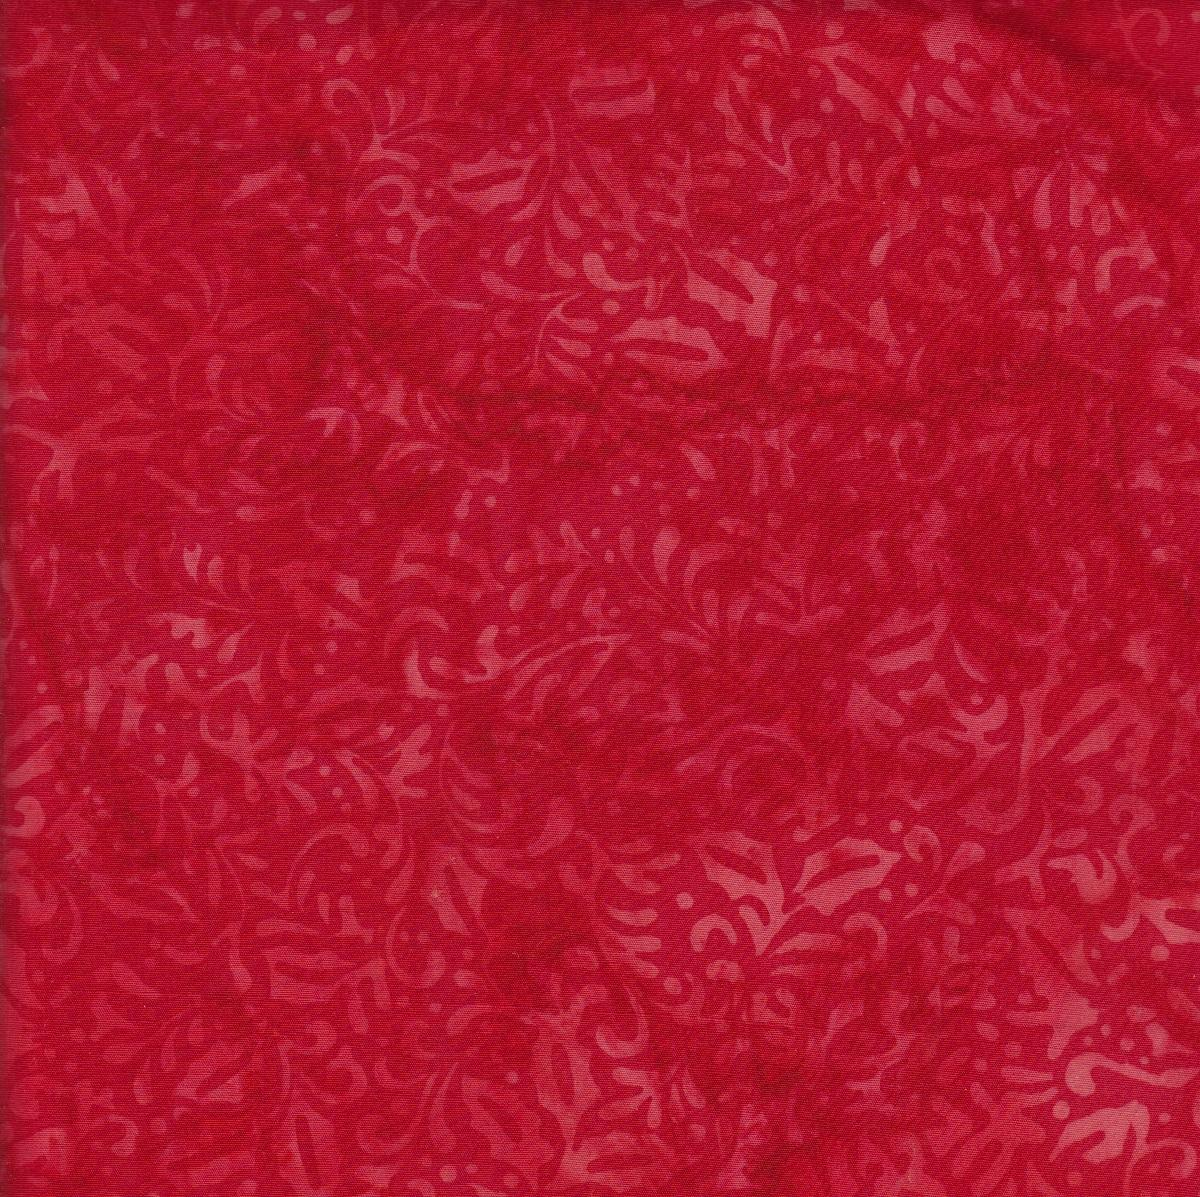 Island Batik - Holly - Red - Peace